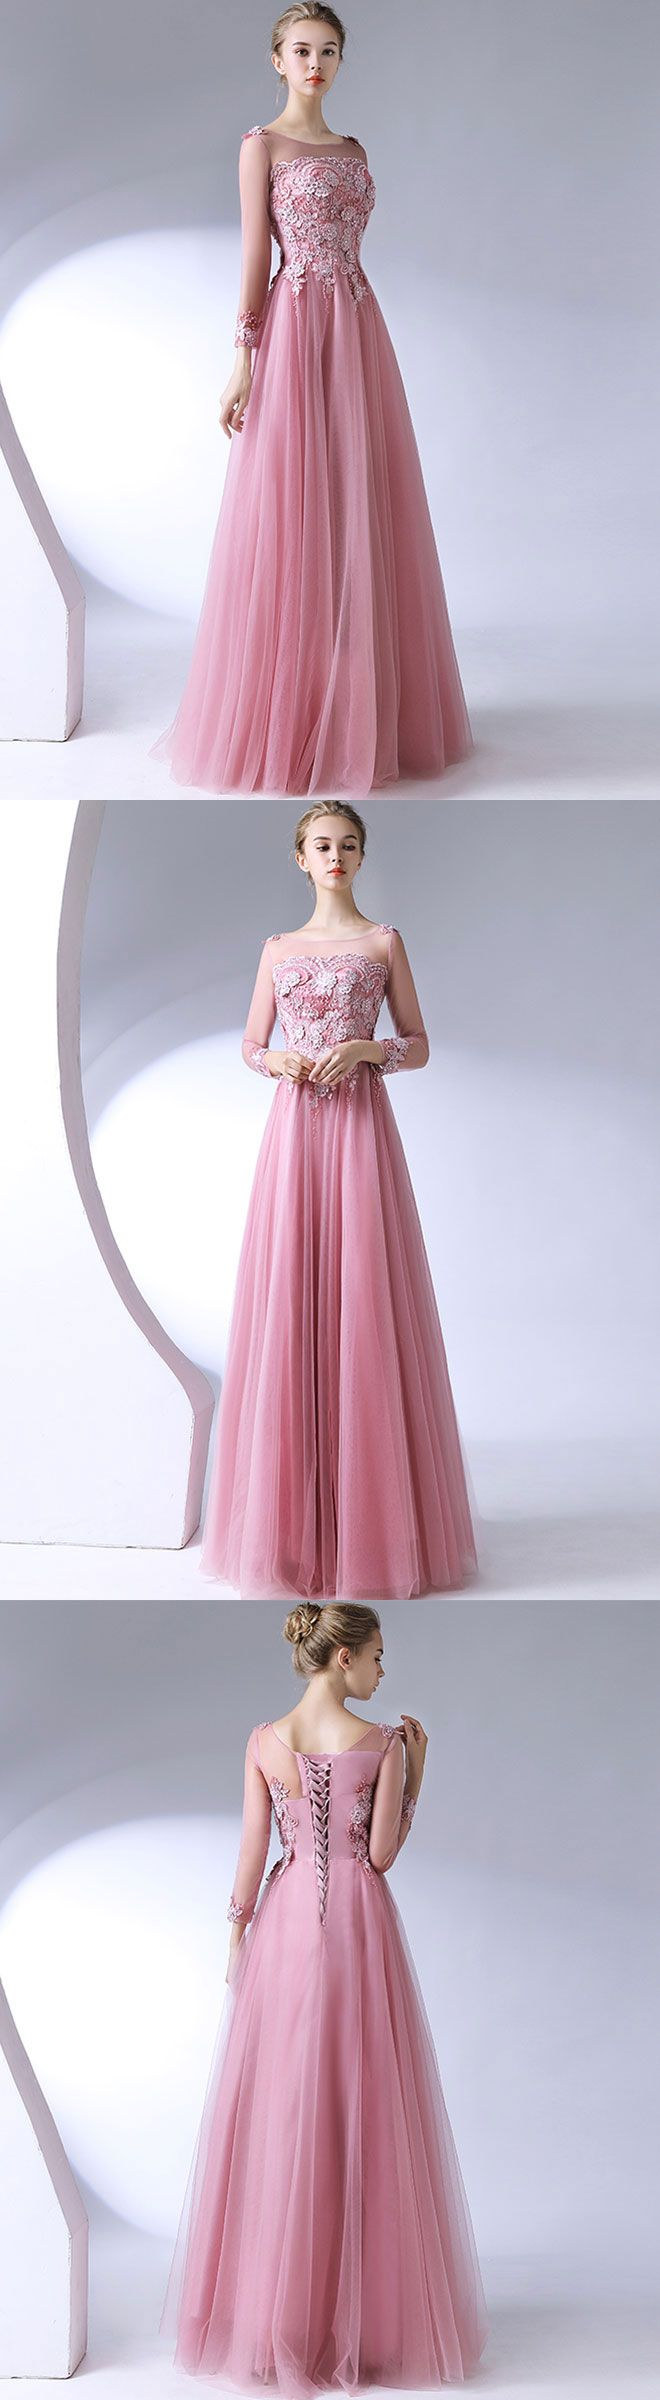 Pink lace tulle long prom dress long sleeve evening dress long